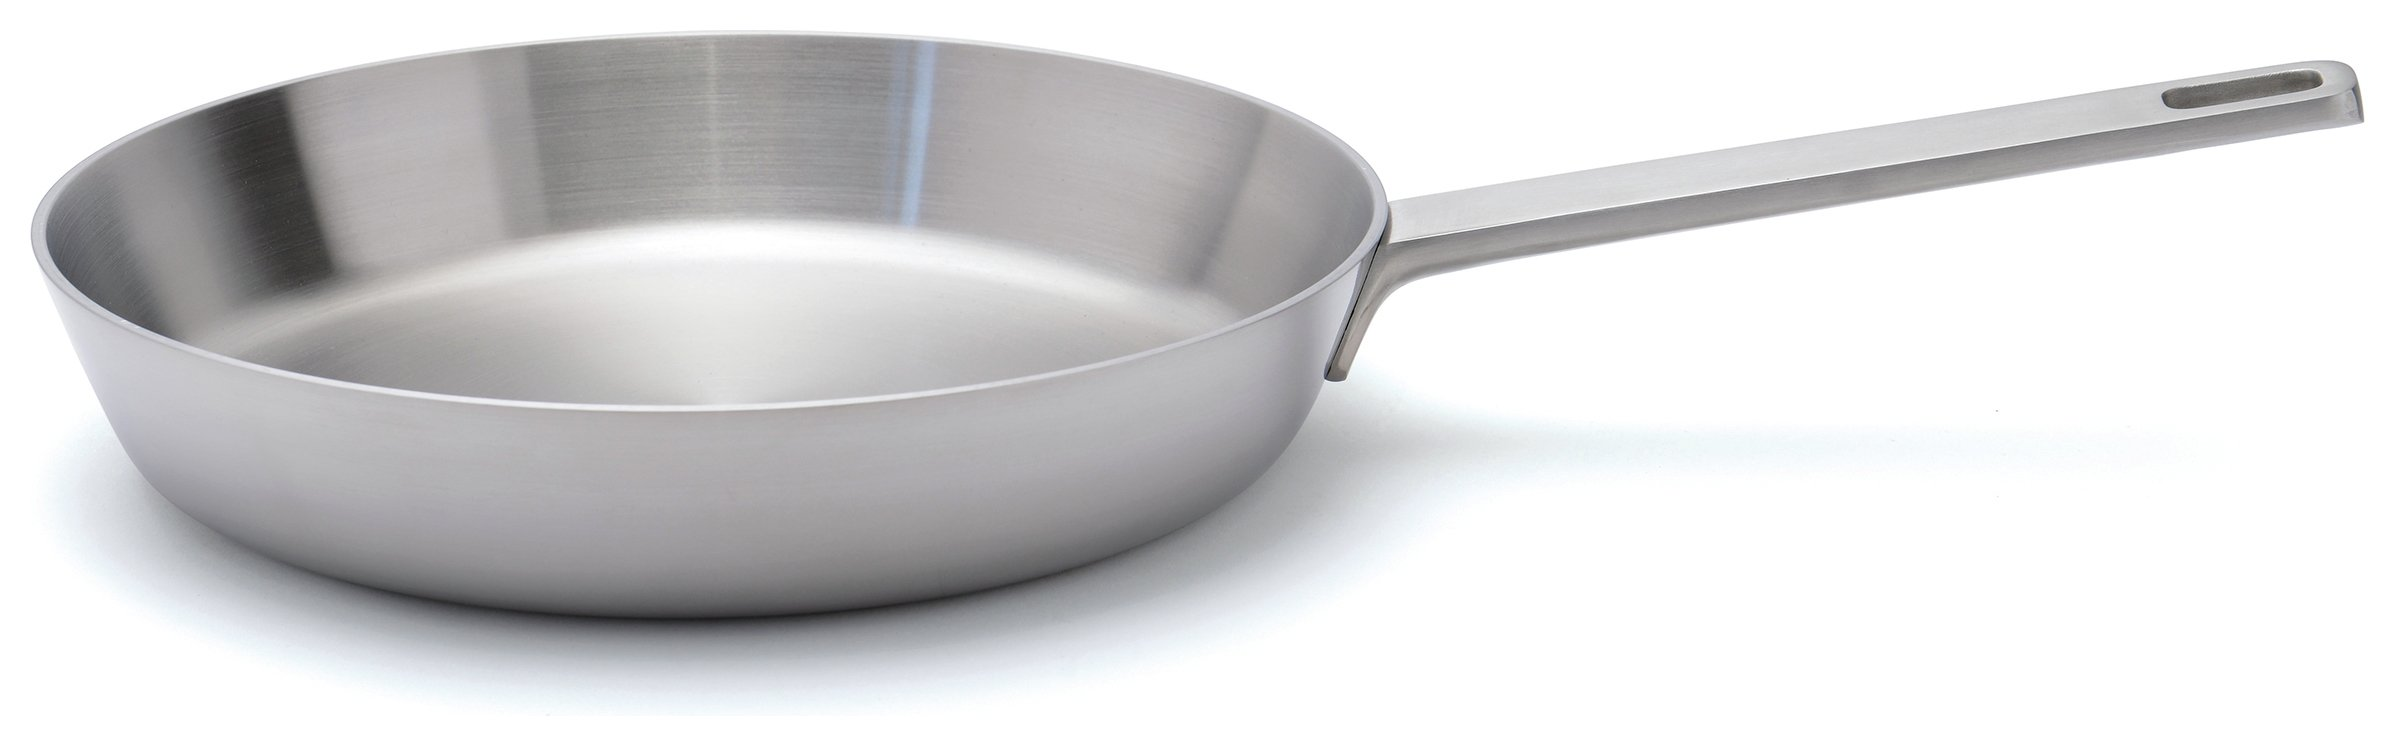 Image of BergHOFF 26cm Stainless Steel 5-Ply Frying Pan.